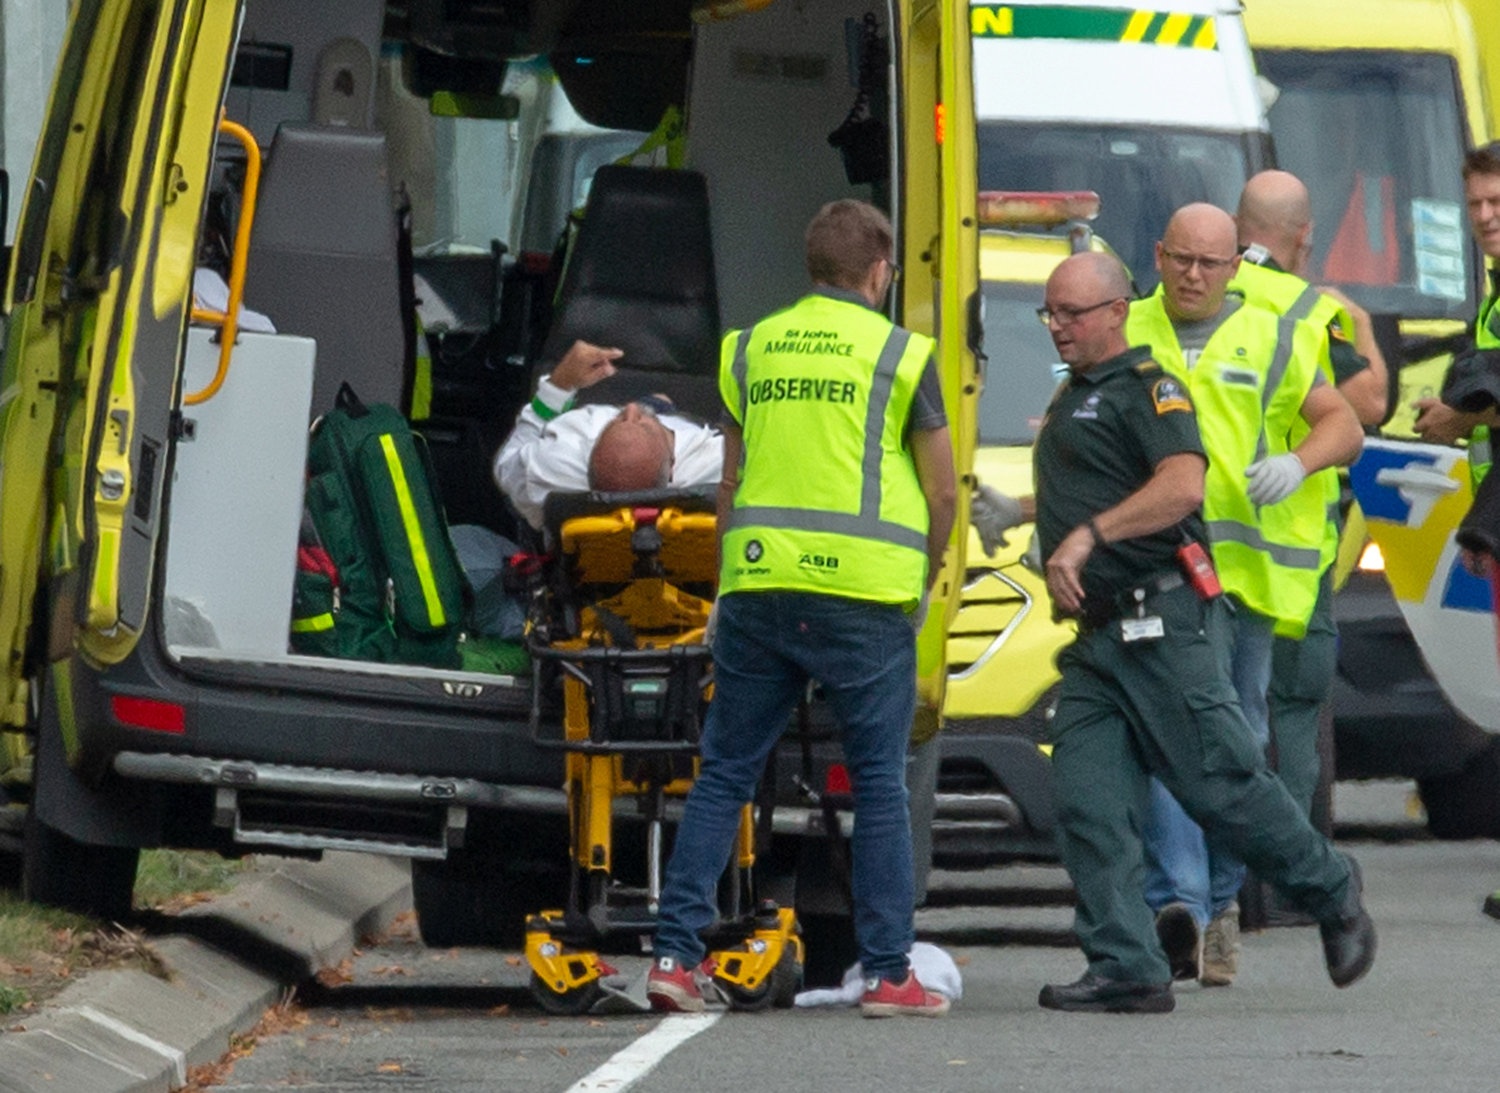 An injured man is placed into an ambulance following a shooting at the Al Noor Mosque in Christchurch, New Zealand, March 15.